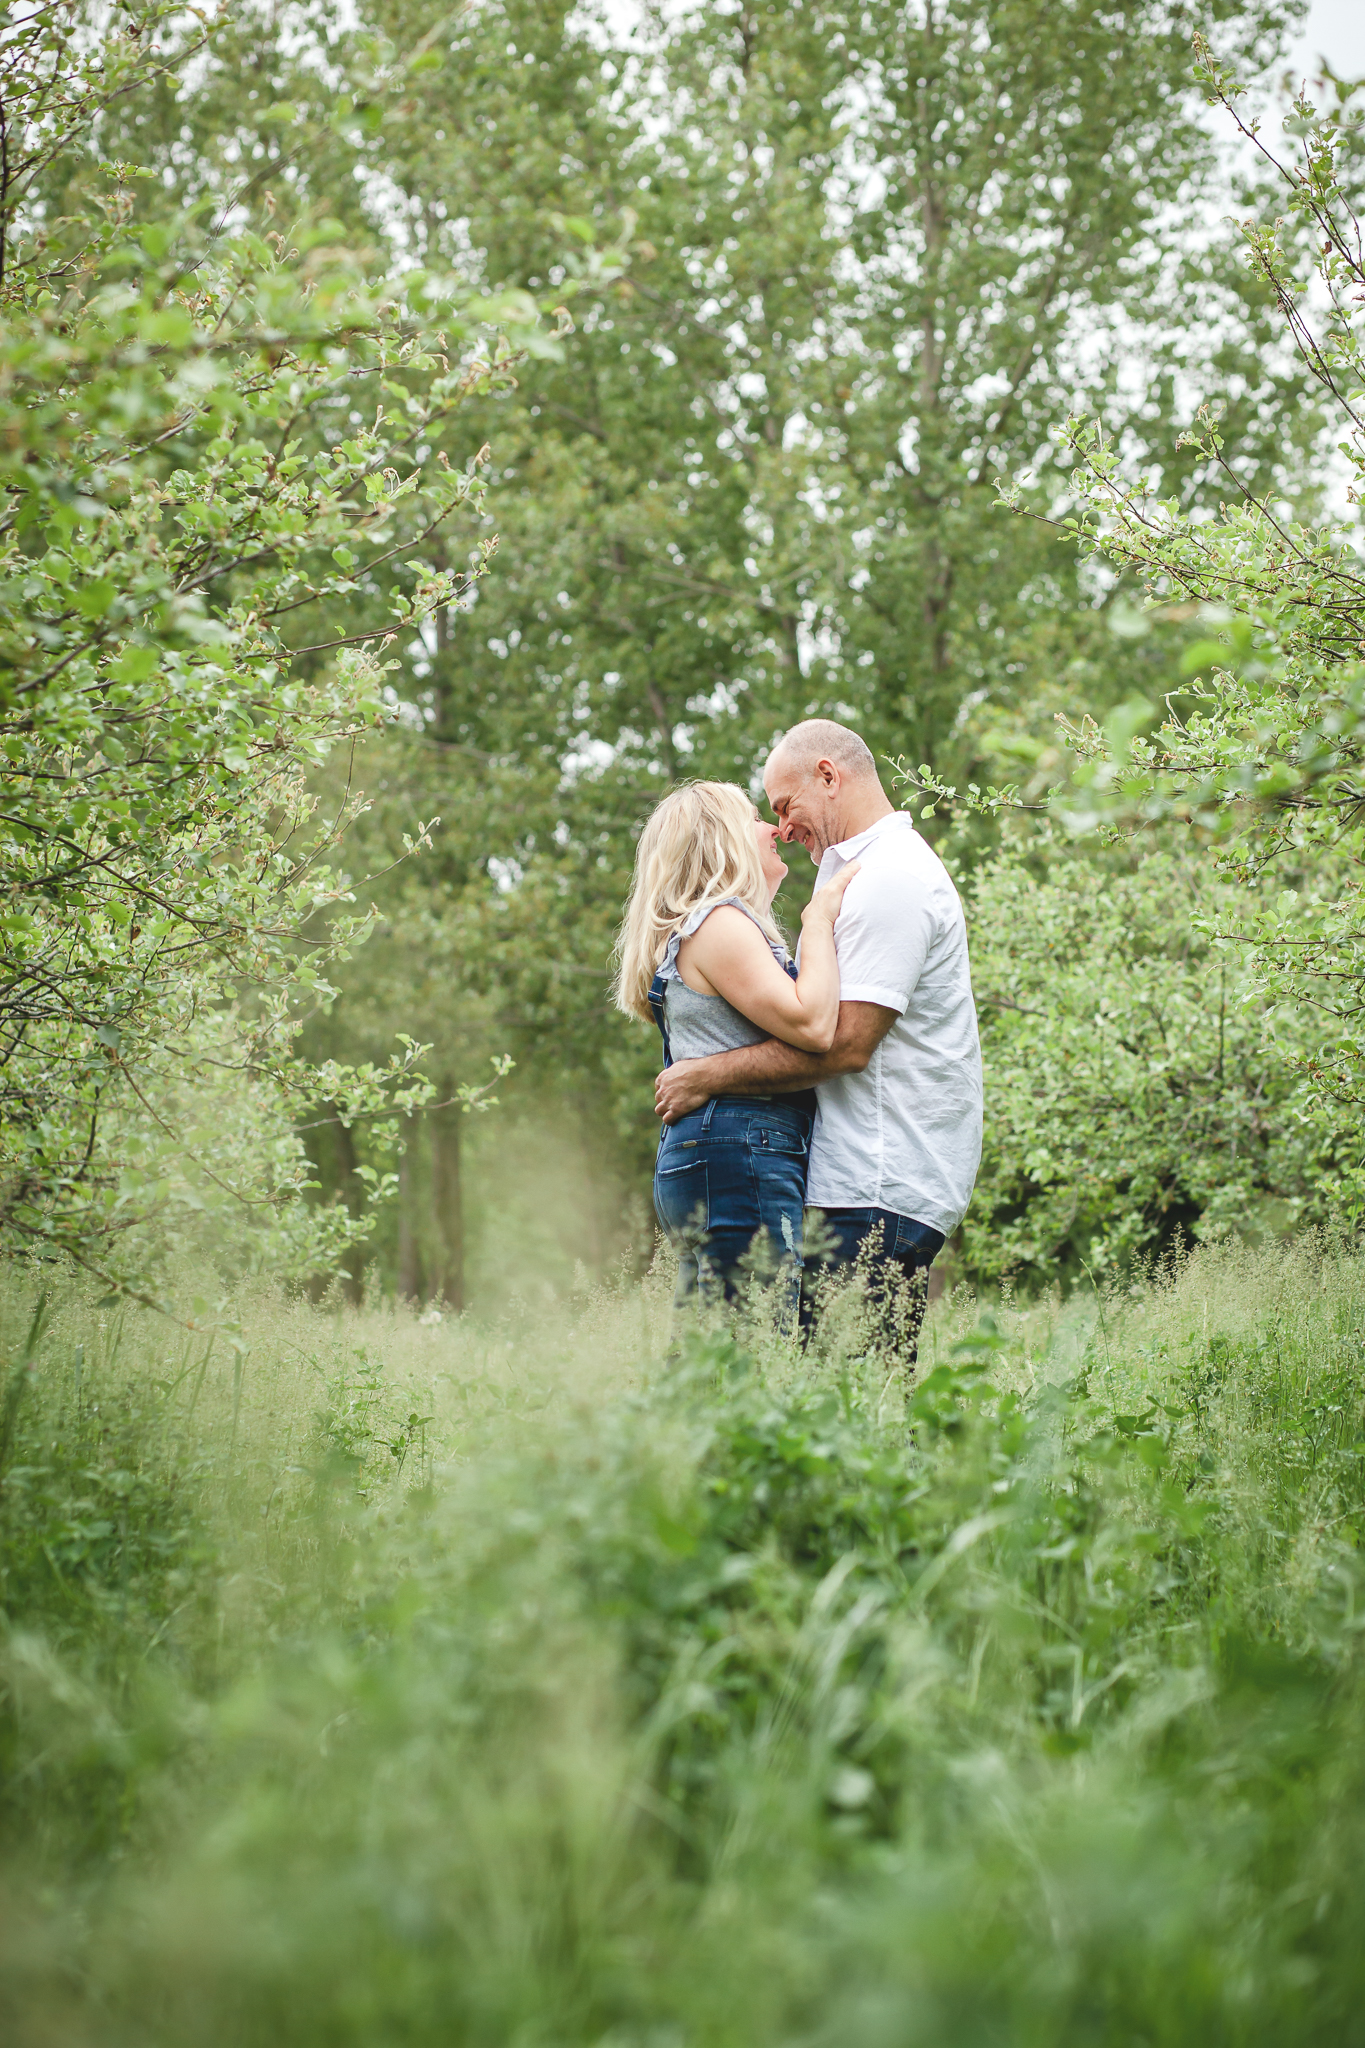 Family Photography- Lifestyle Family Photography- Candid Family Photography- Family Field- Family with Dog- Barrie Family Photographer- Apple Orchard Family Session- Smoke Bomb Photo (44 of 83).jpg